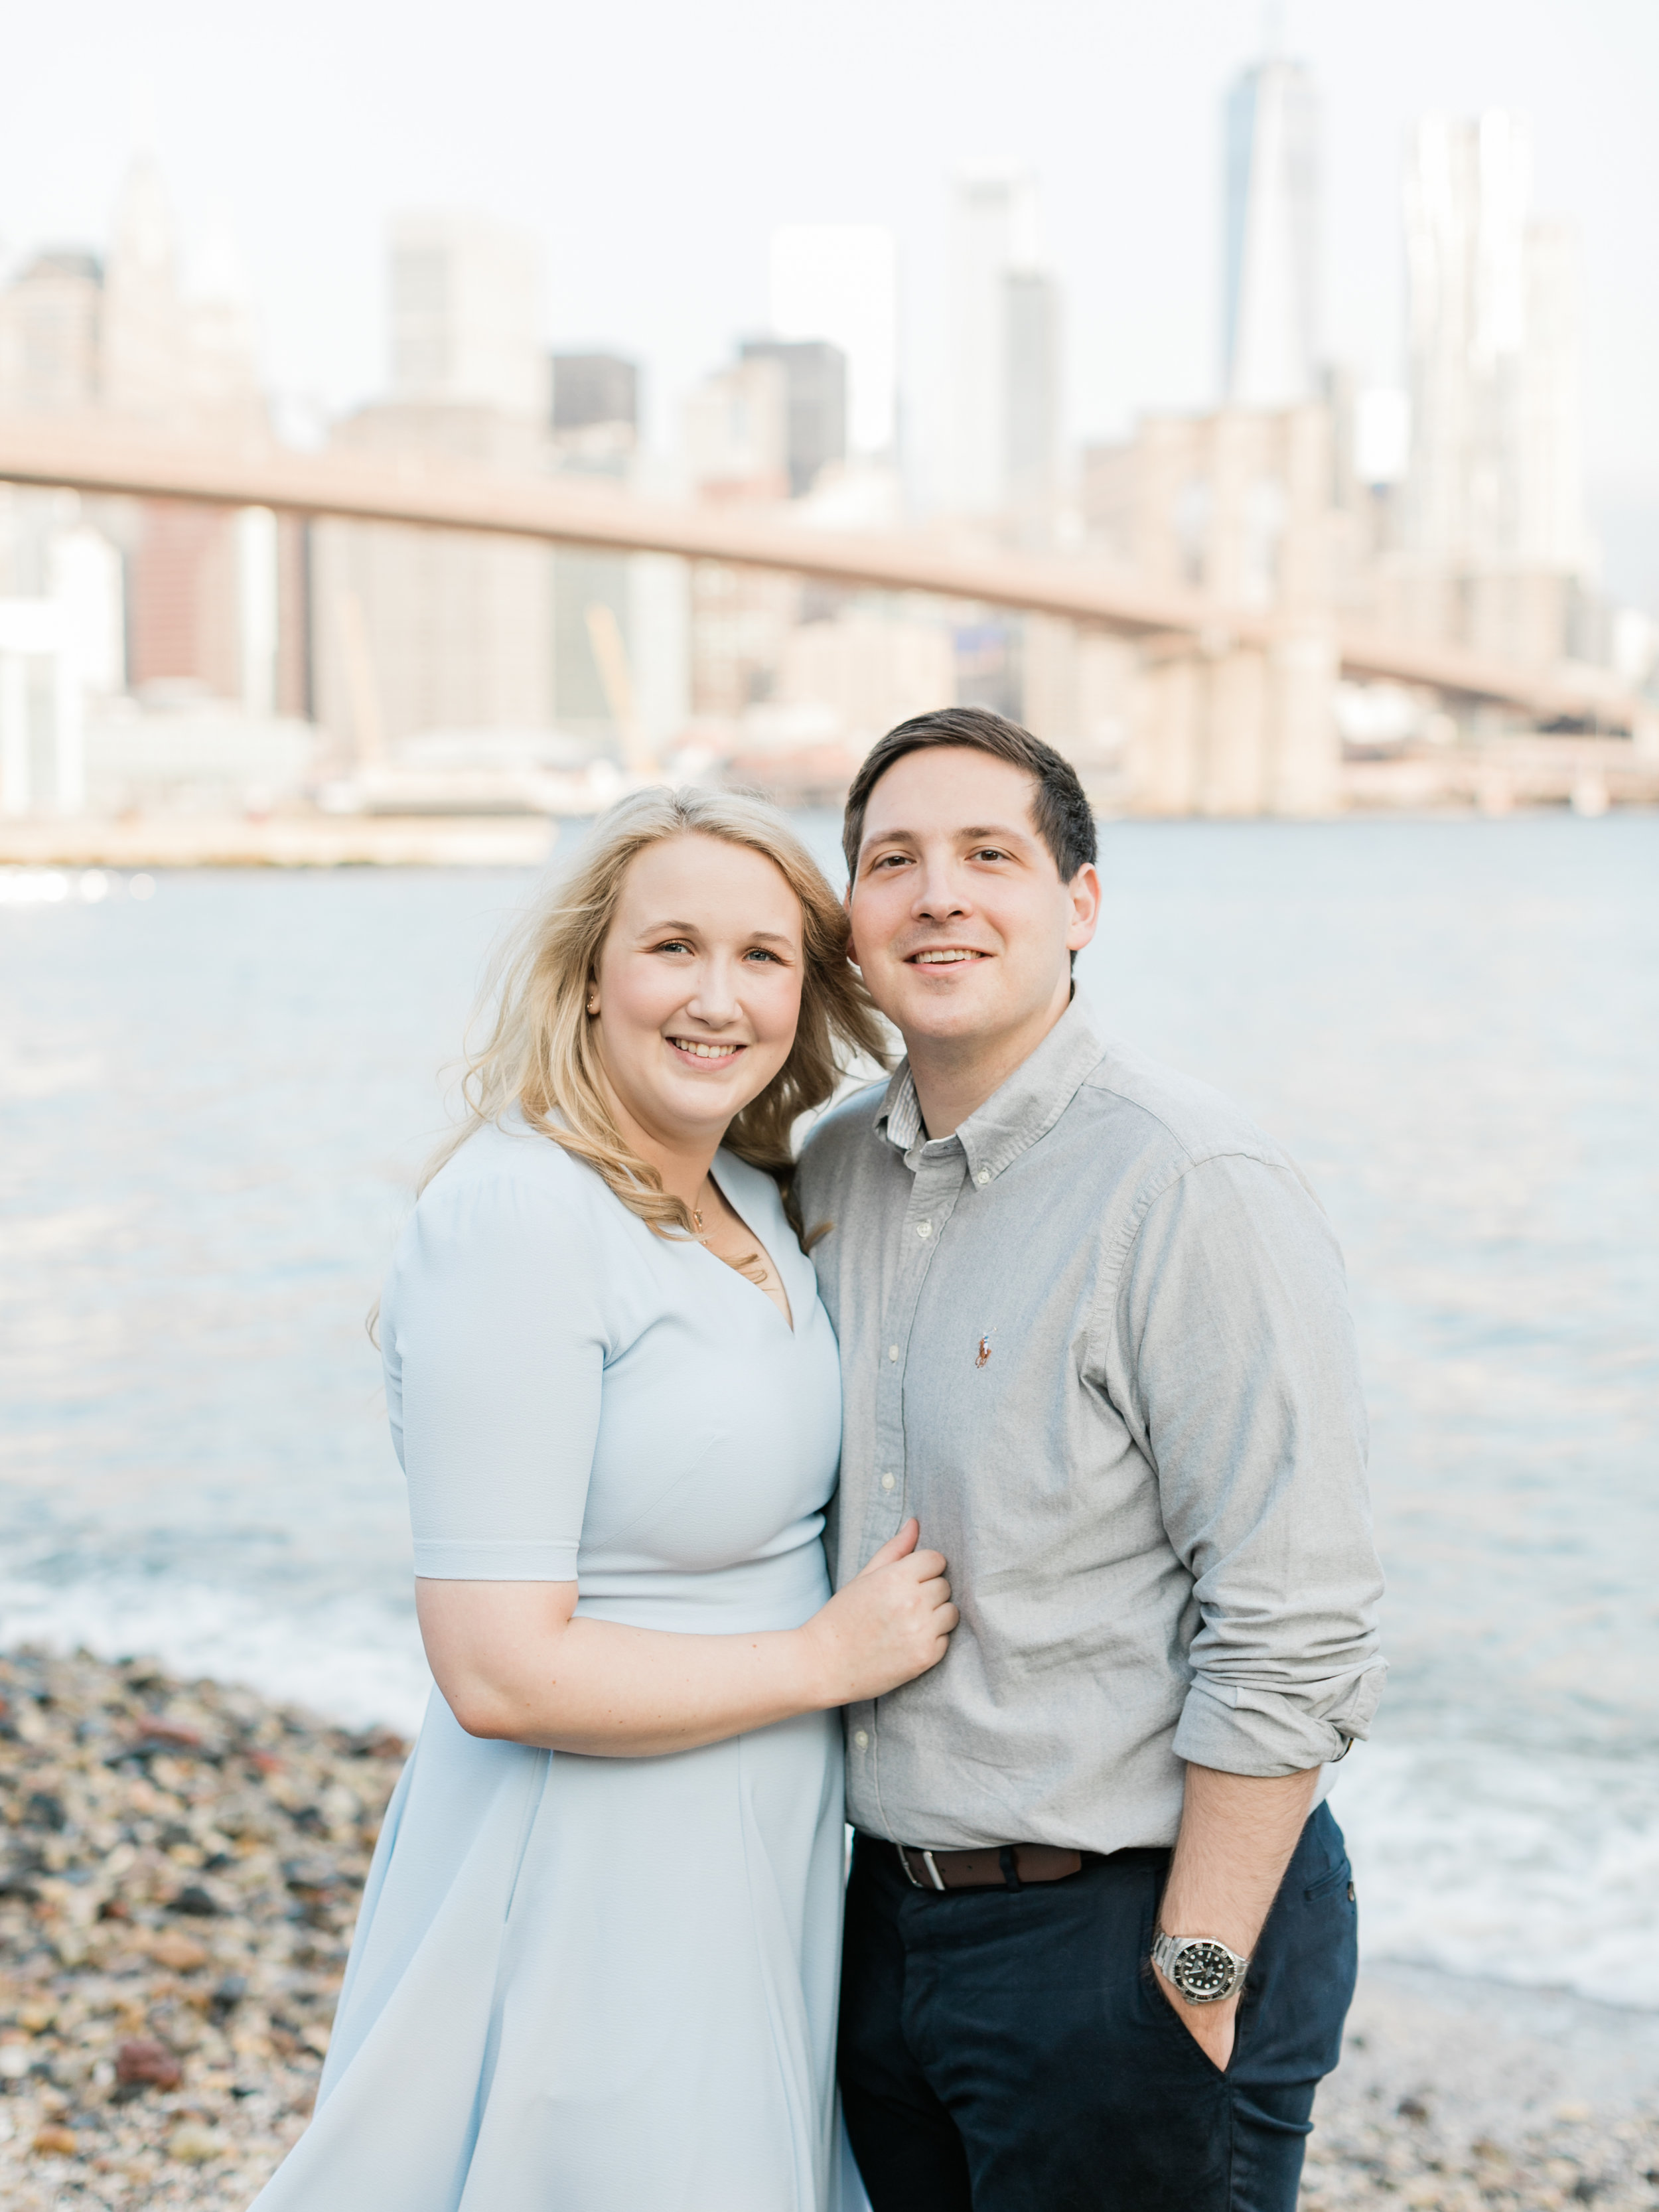 nyc-engagement-photographer-asher-gardner3.jpg